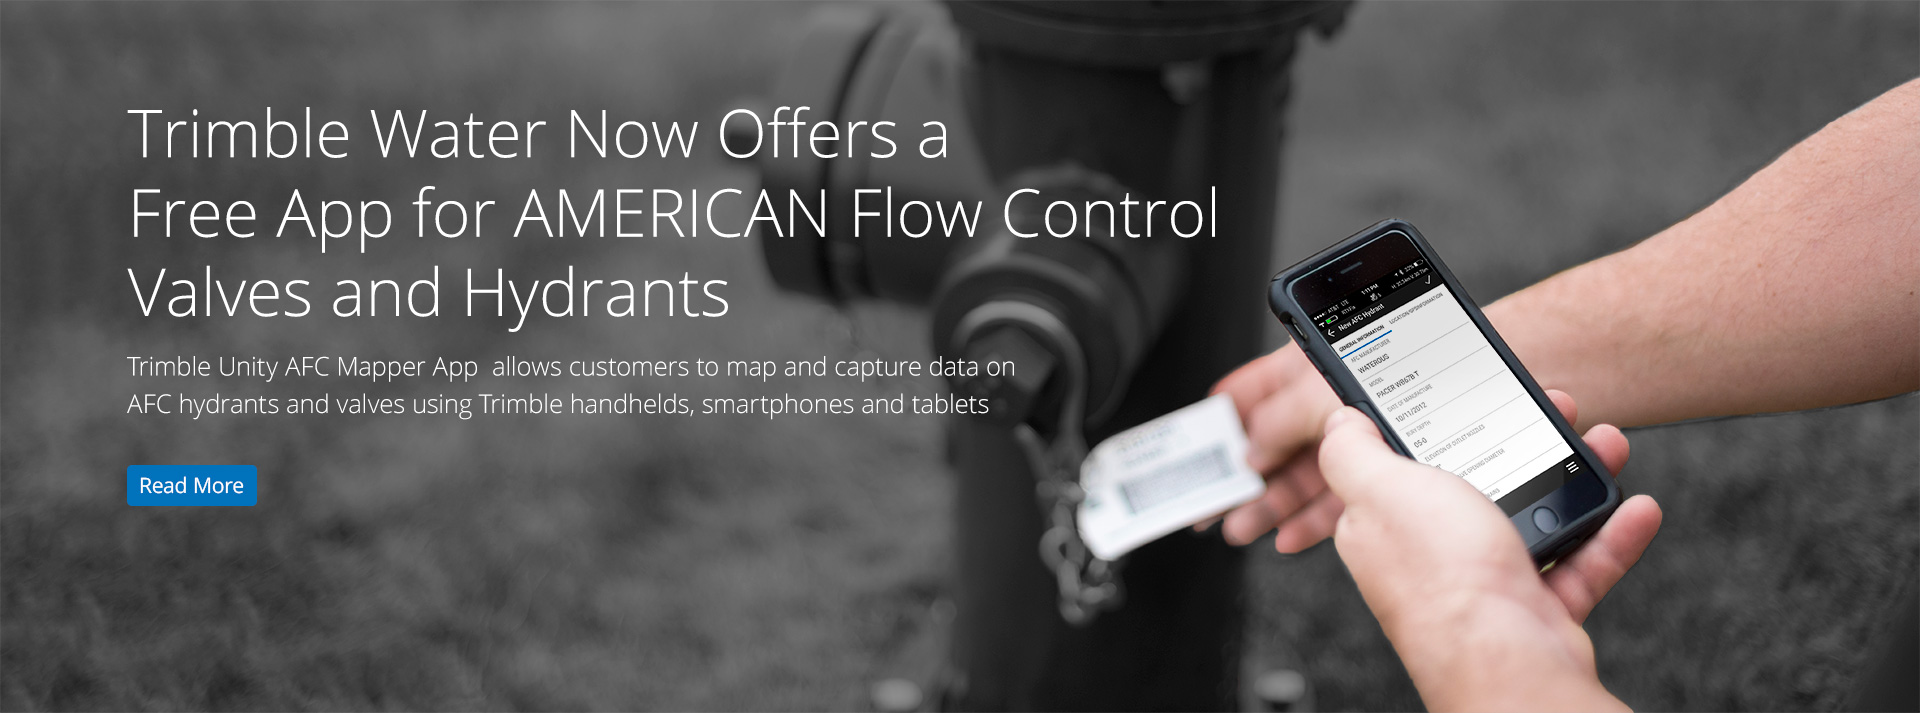 >Trimble Water Now Offers a Free App for AMERICAN Flow Control Valves and Hydrants